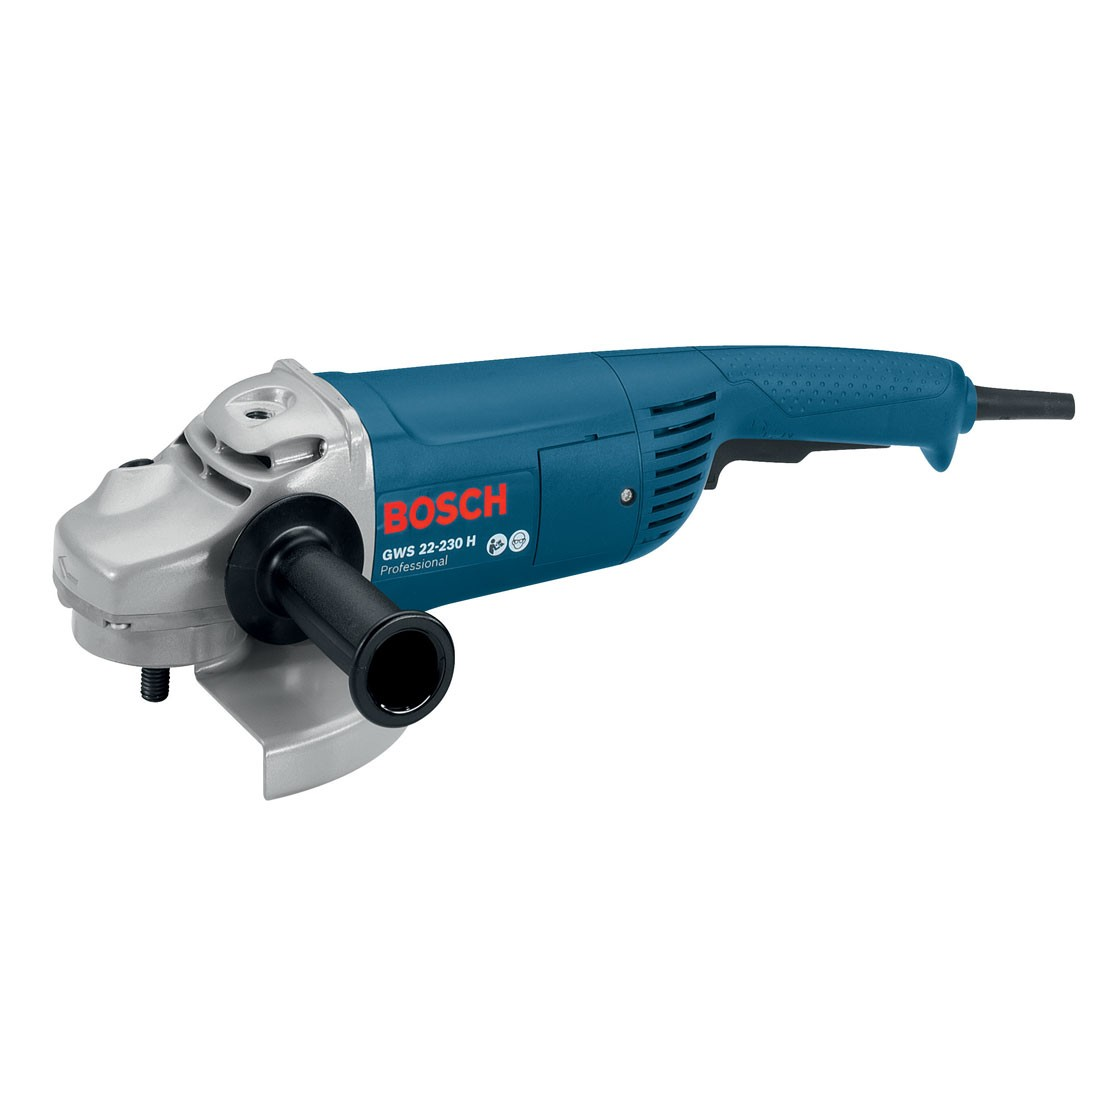 bosch gws 22 230 h professional 9 230mm angle grinder powertool world. Black Bedroom Furniture Sets. Home Design Ideas